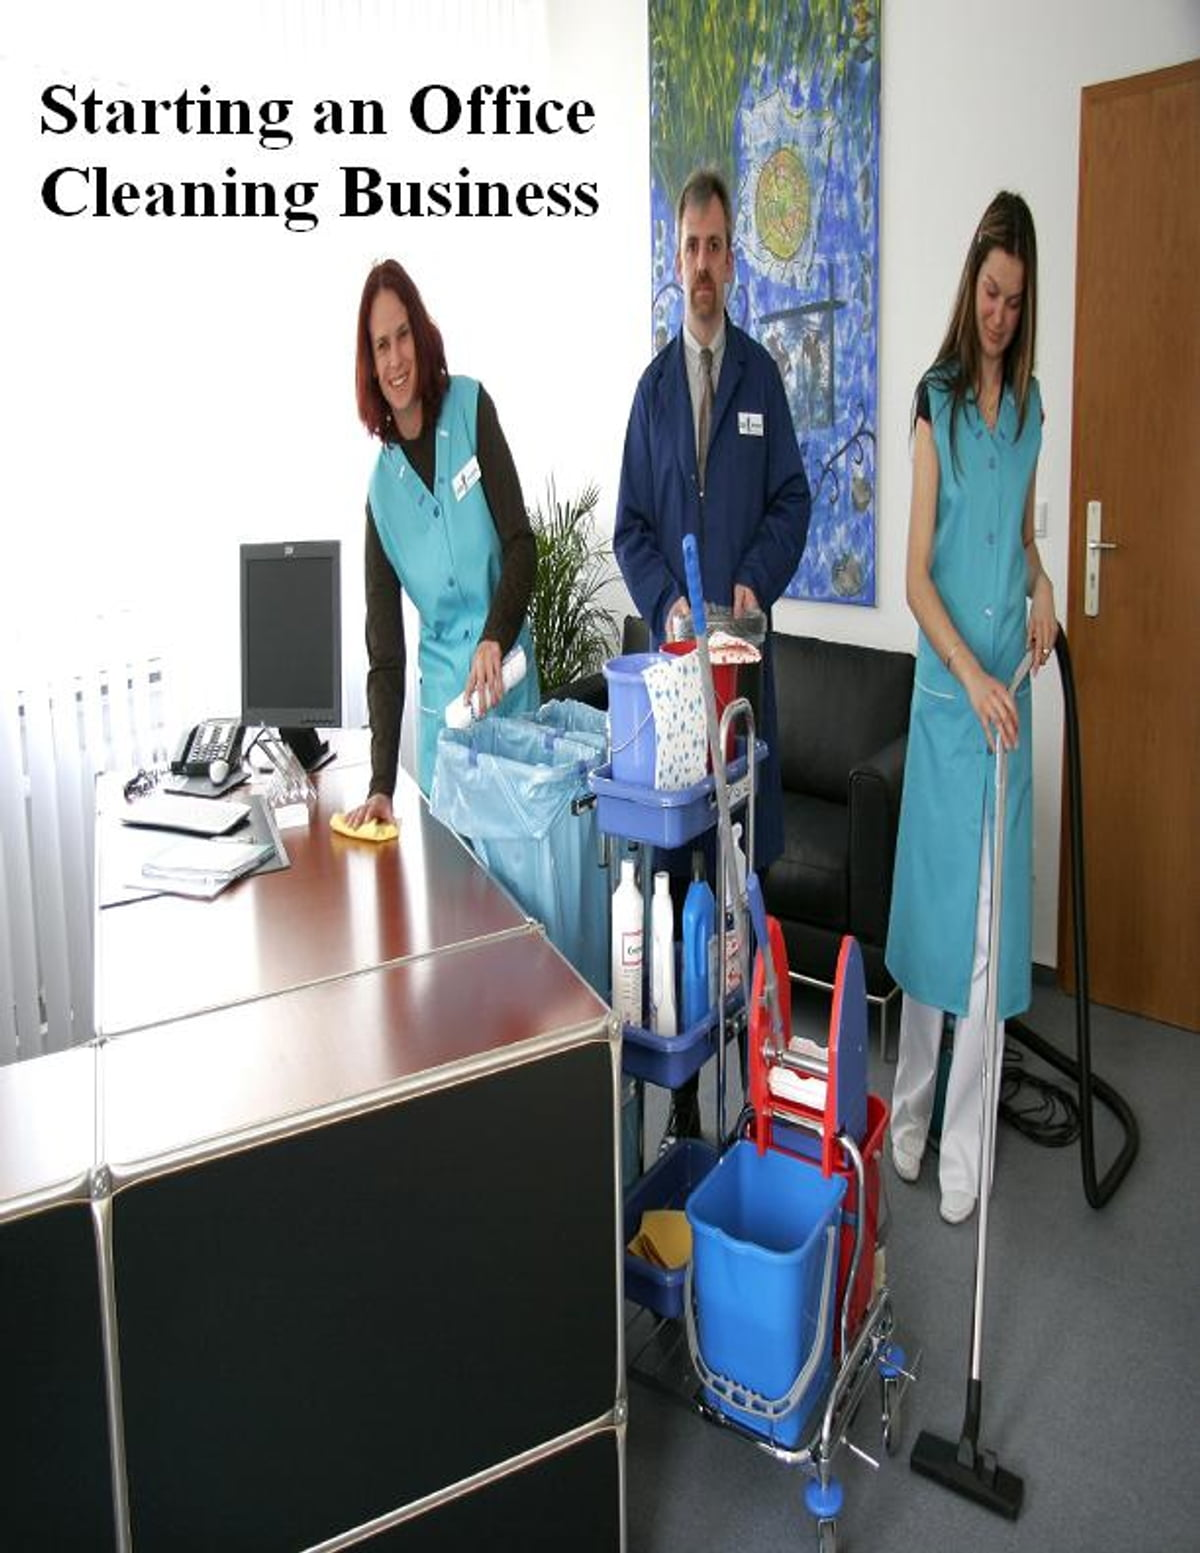 Starting an Office Cleaning Business eBook by V.T. - 1230000233180 ...